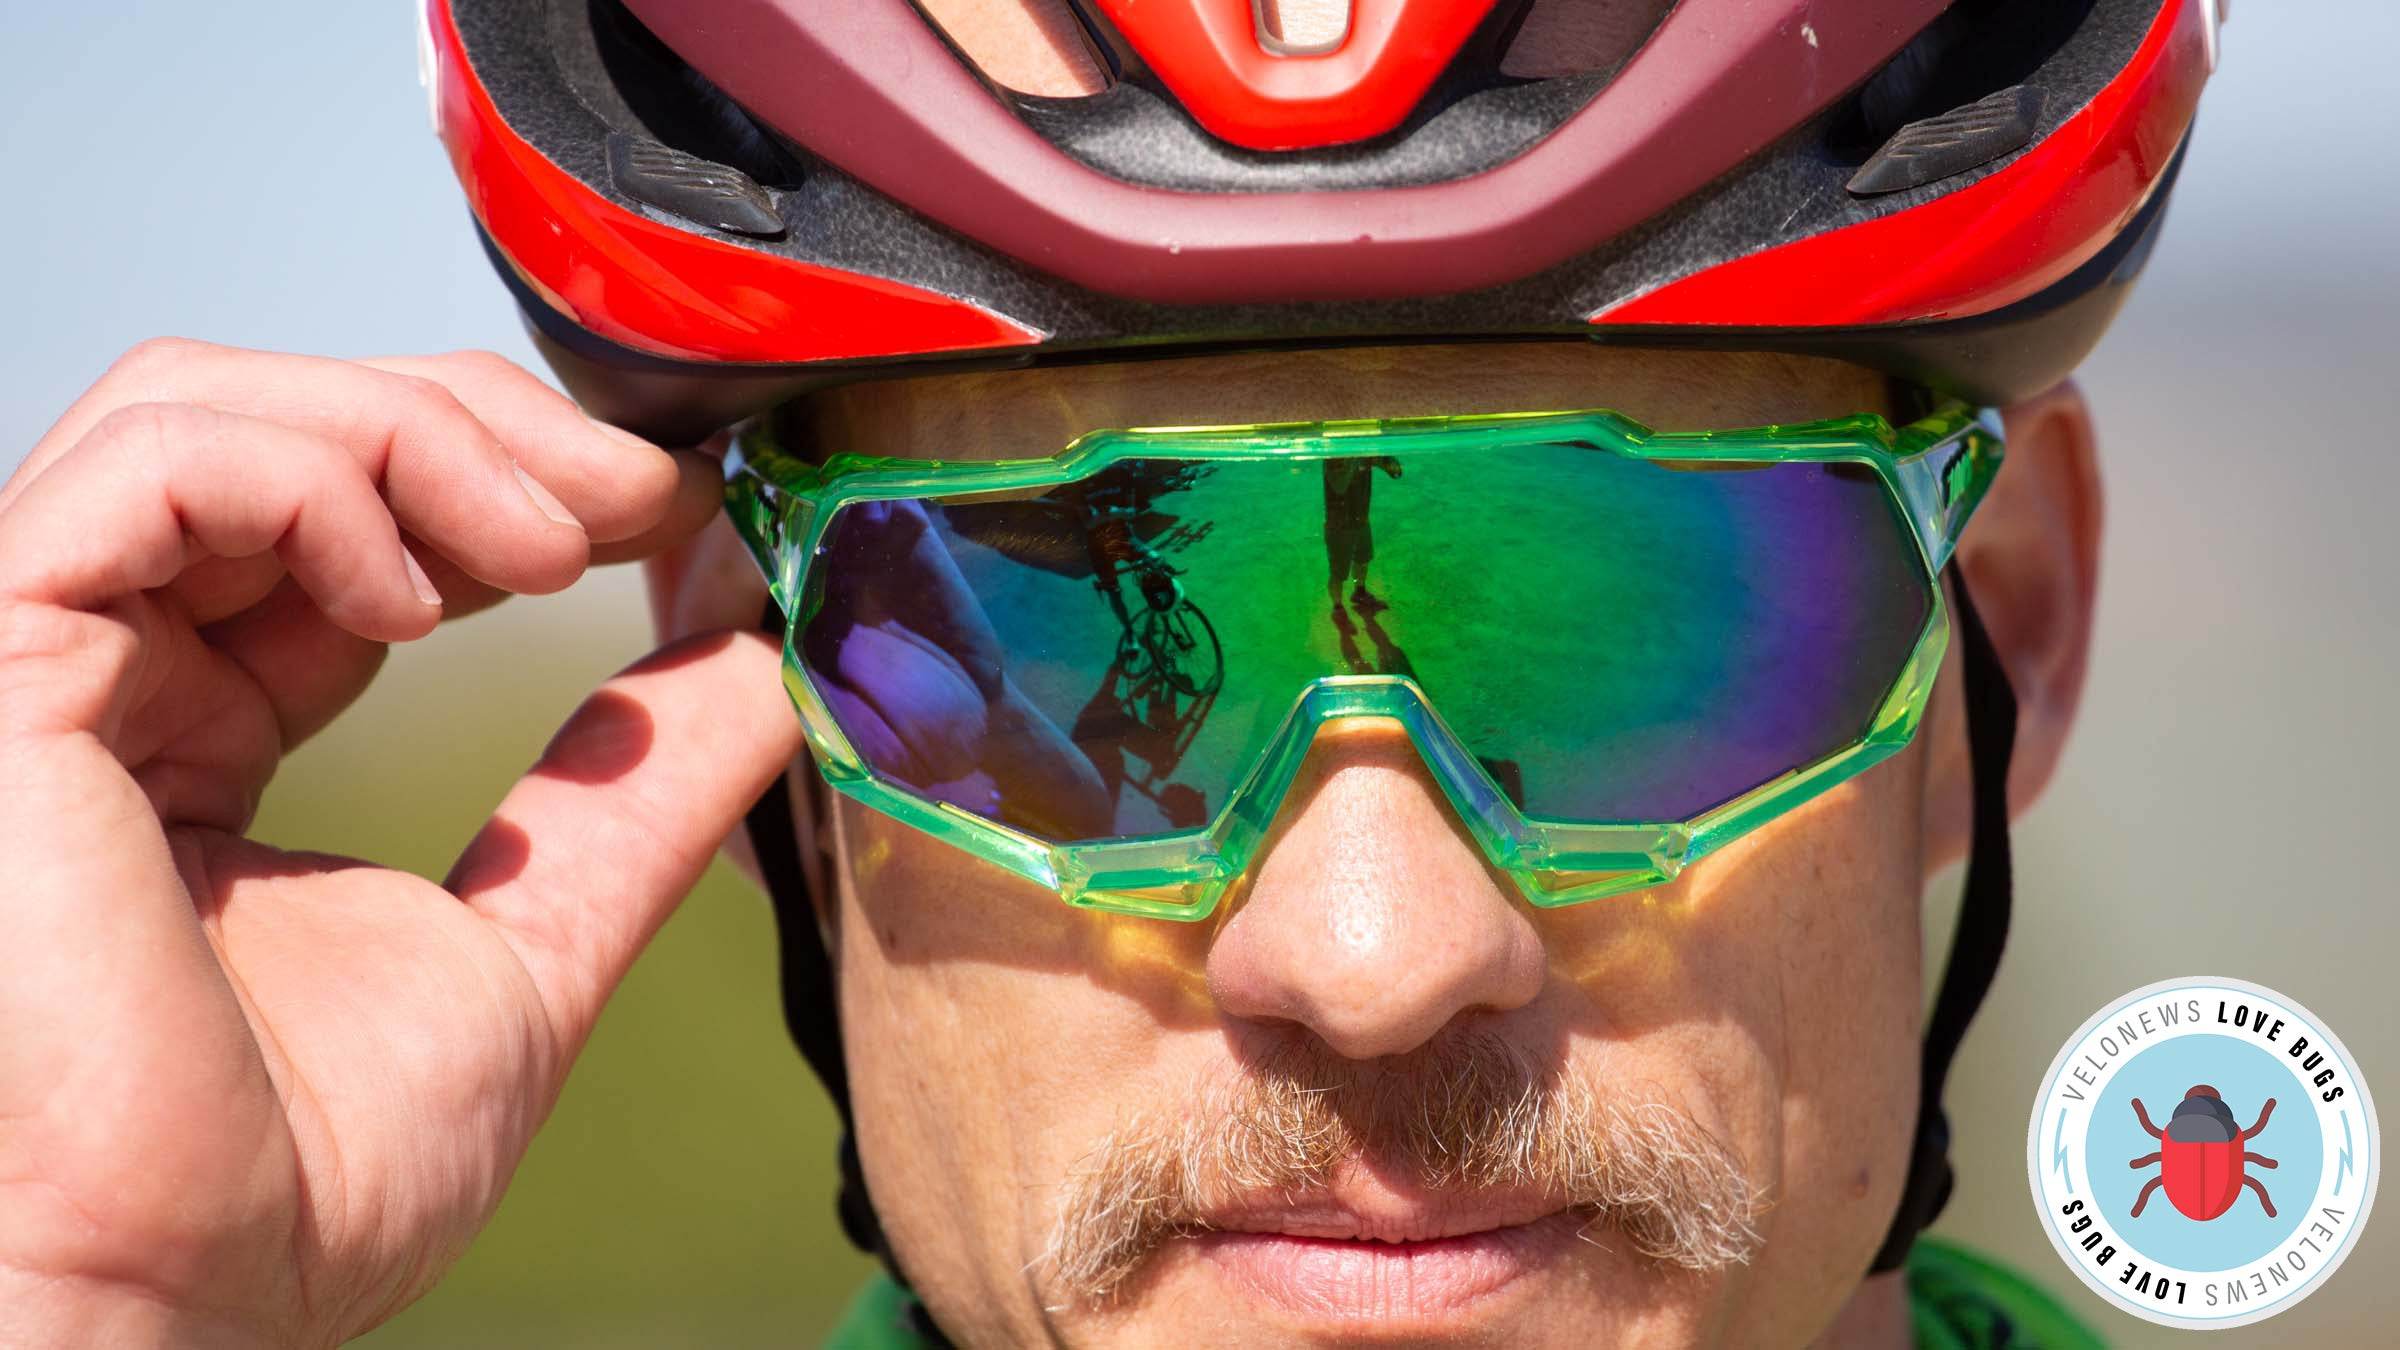 100% Speedtrap sunglasses: What I love; what bugs me – VeloNews.com